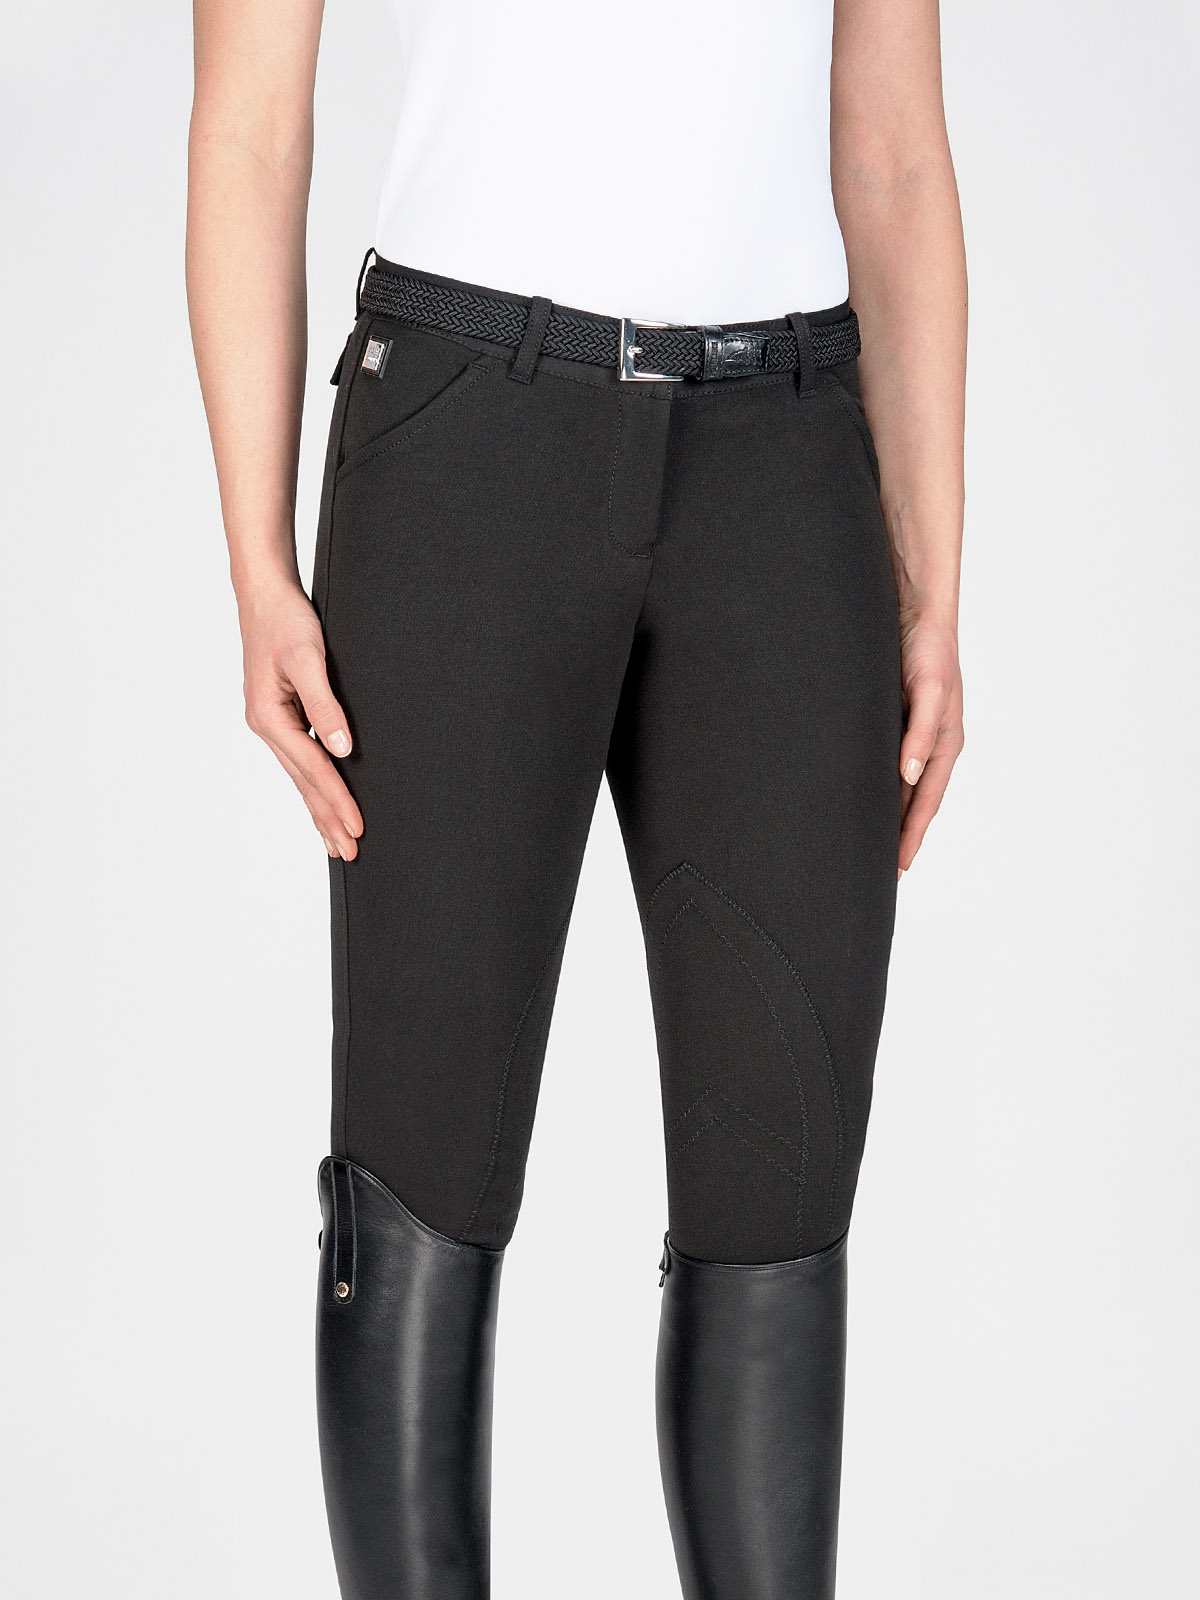 BOSTON - Women's Knee Patch Riding Breeches 3